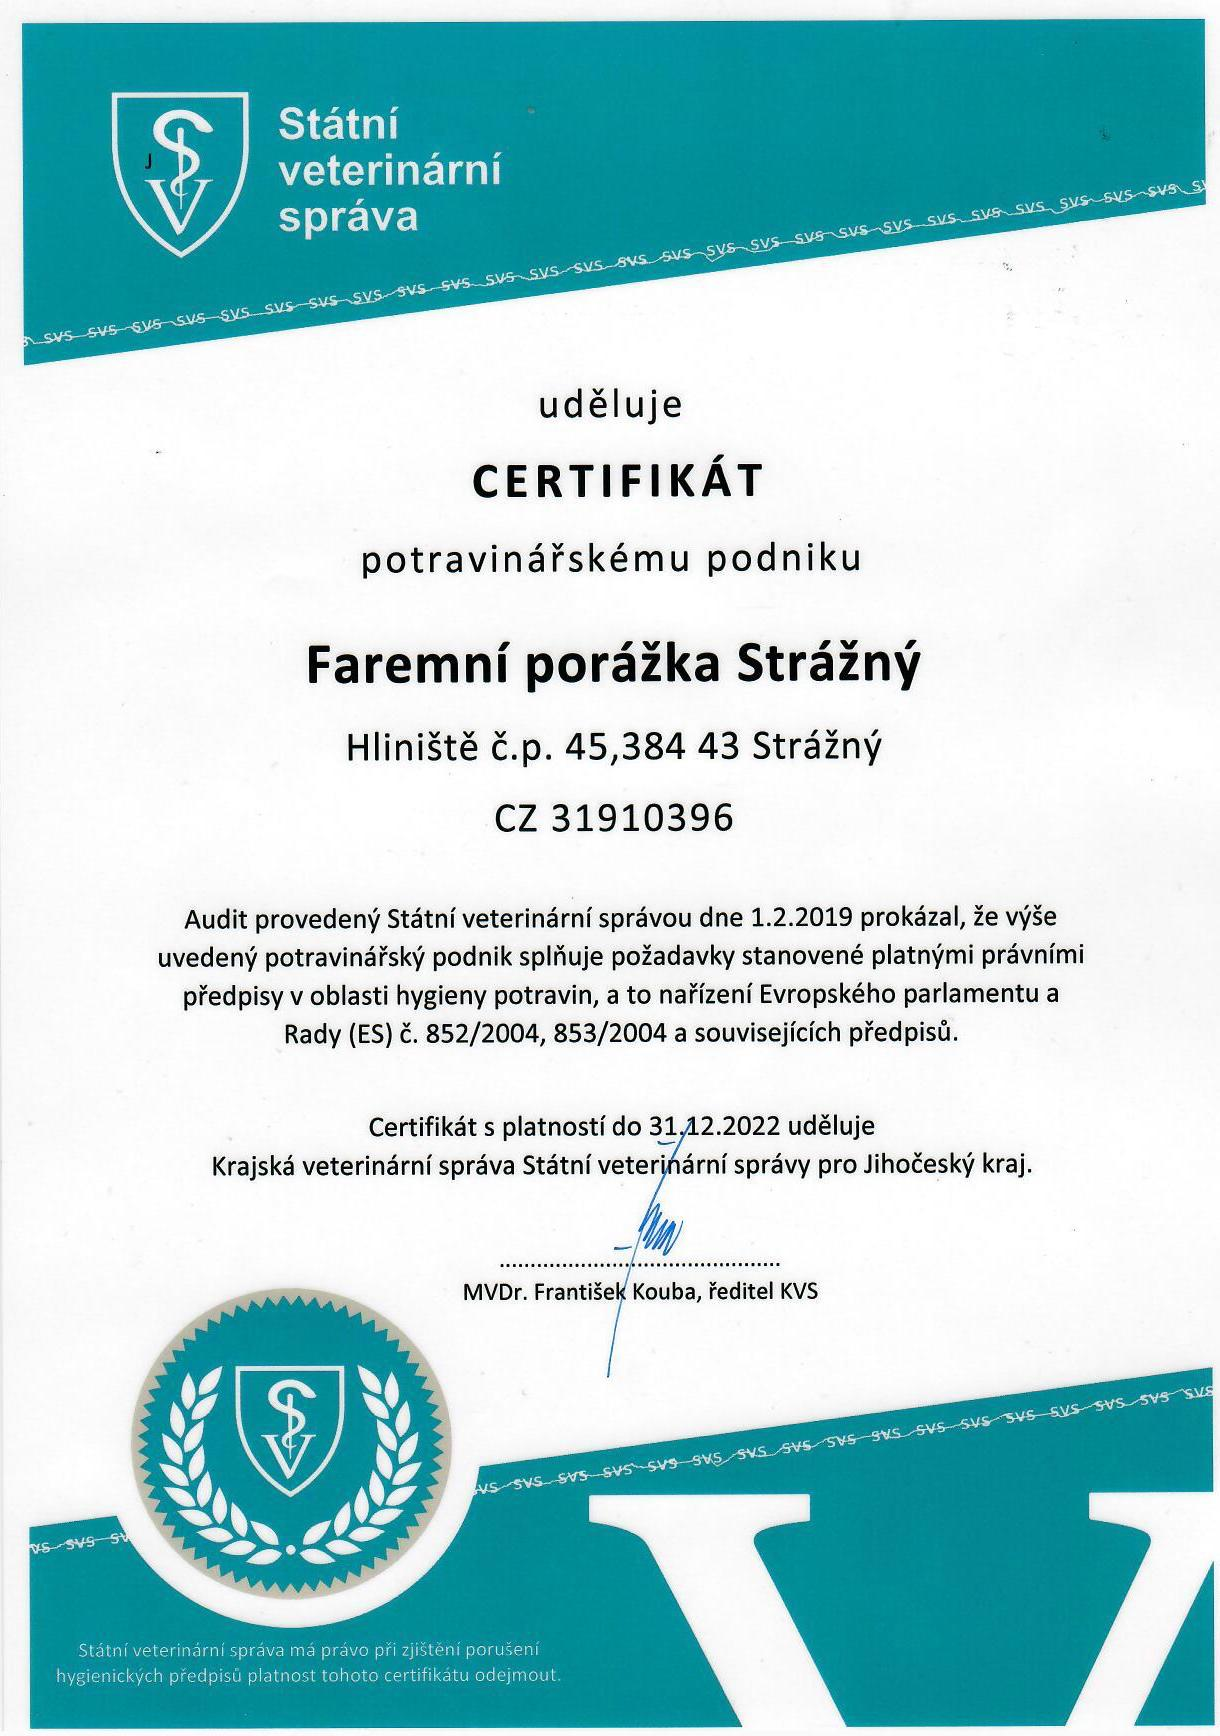 certifikat_audit